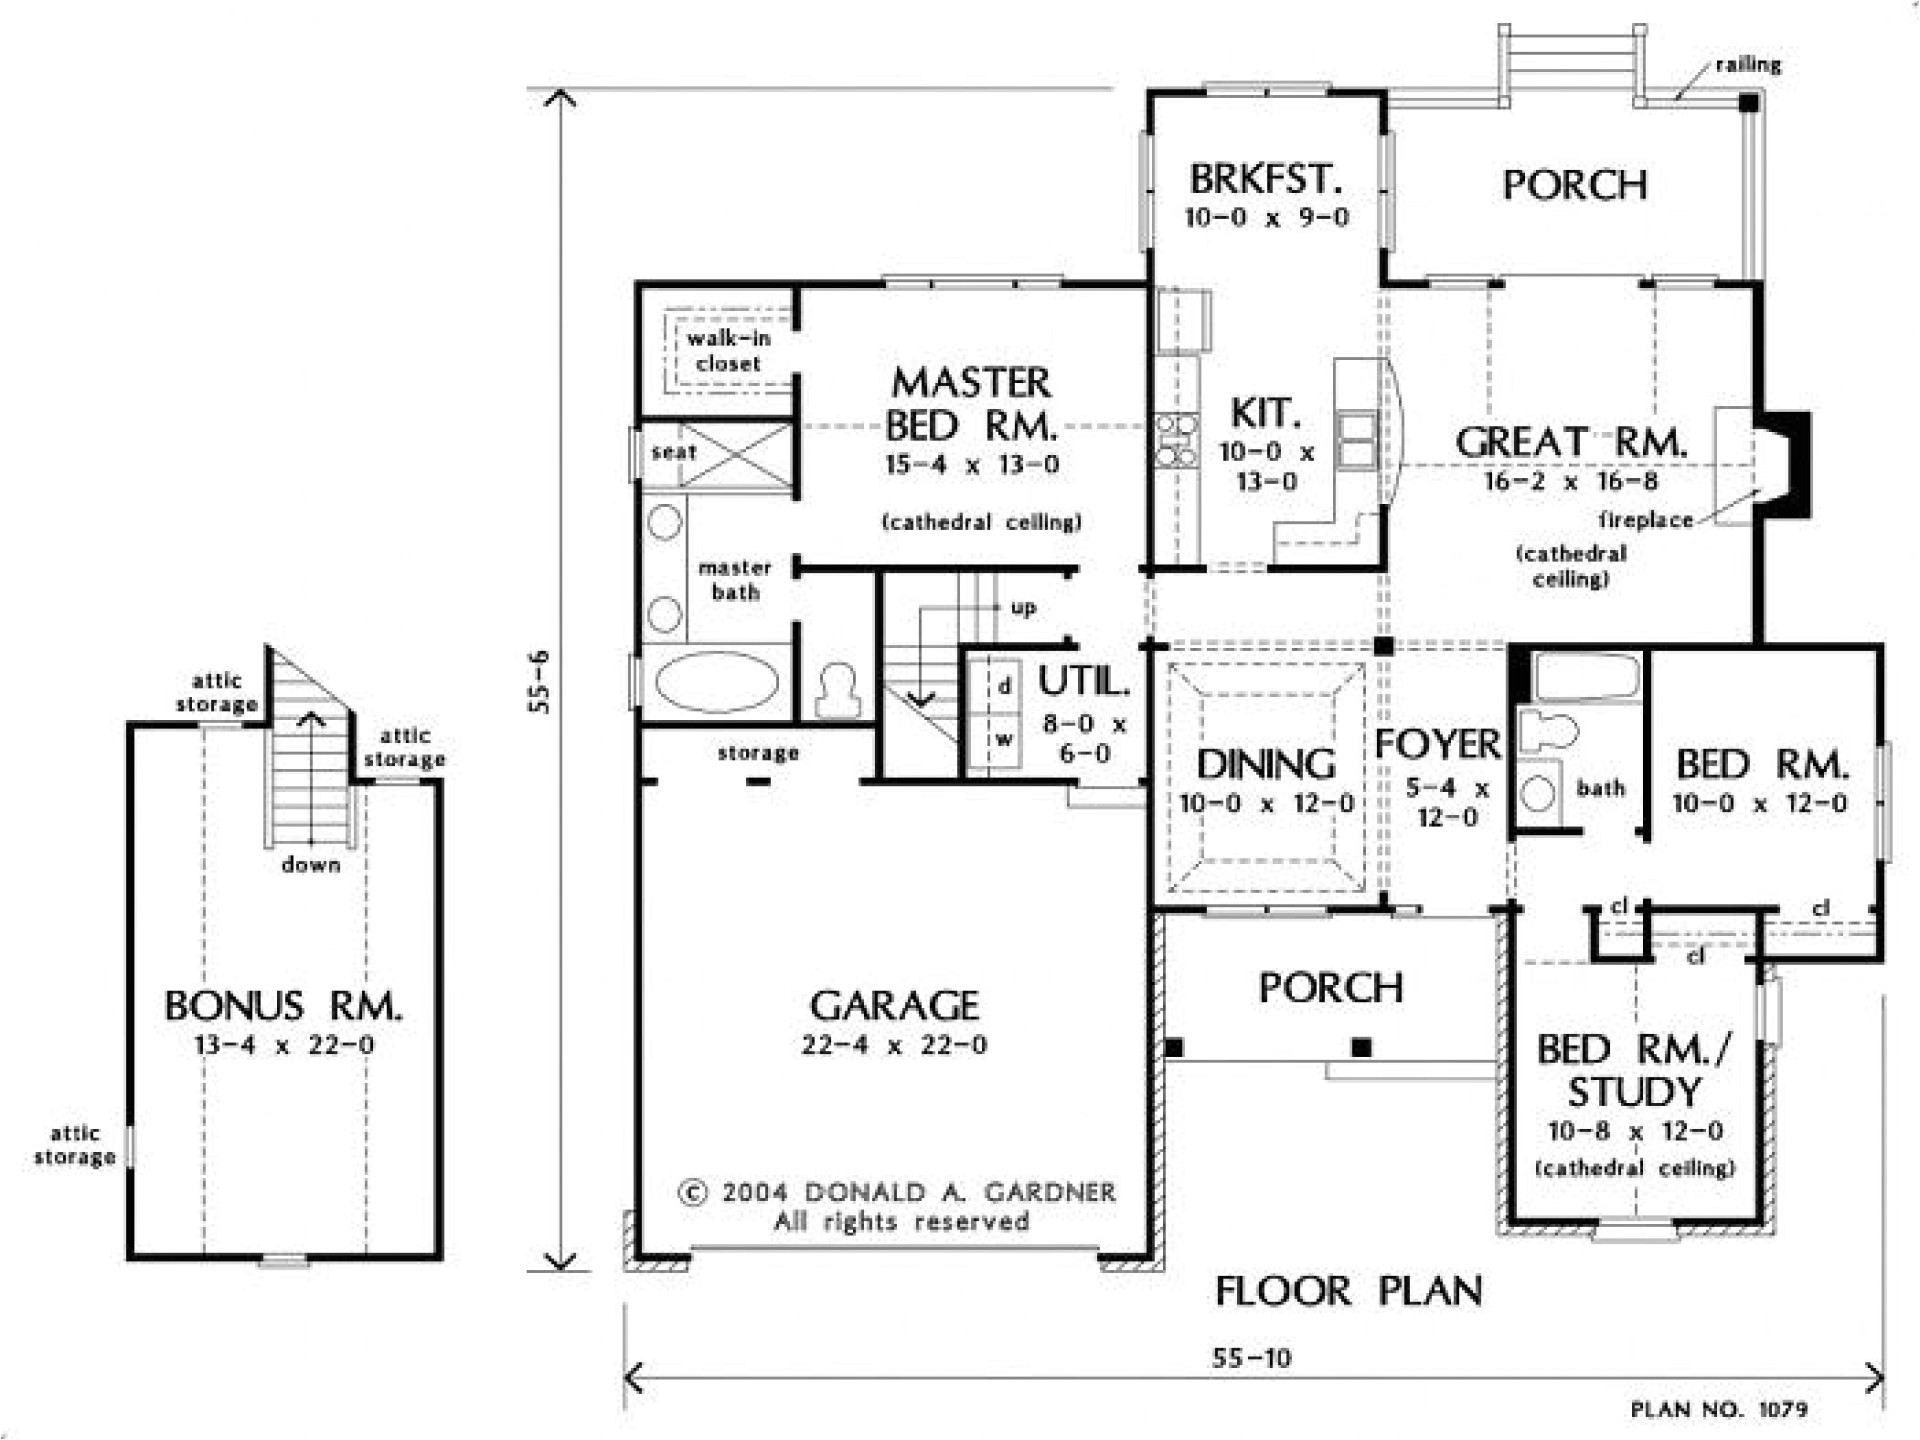 plan drawing floor plans remodeling download to houses no sketch use draw online floor the program with houseplans simple idea